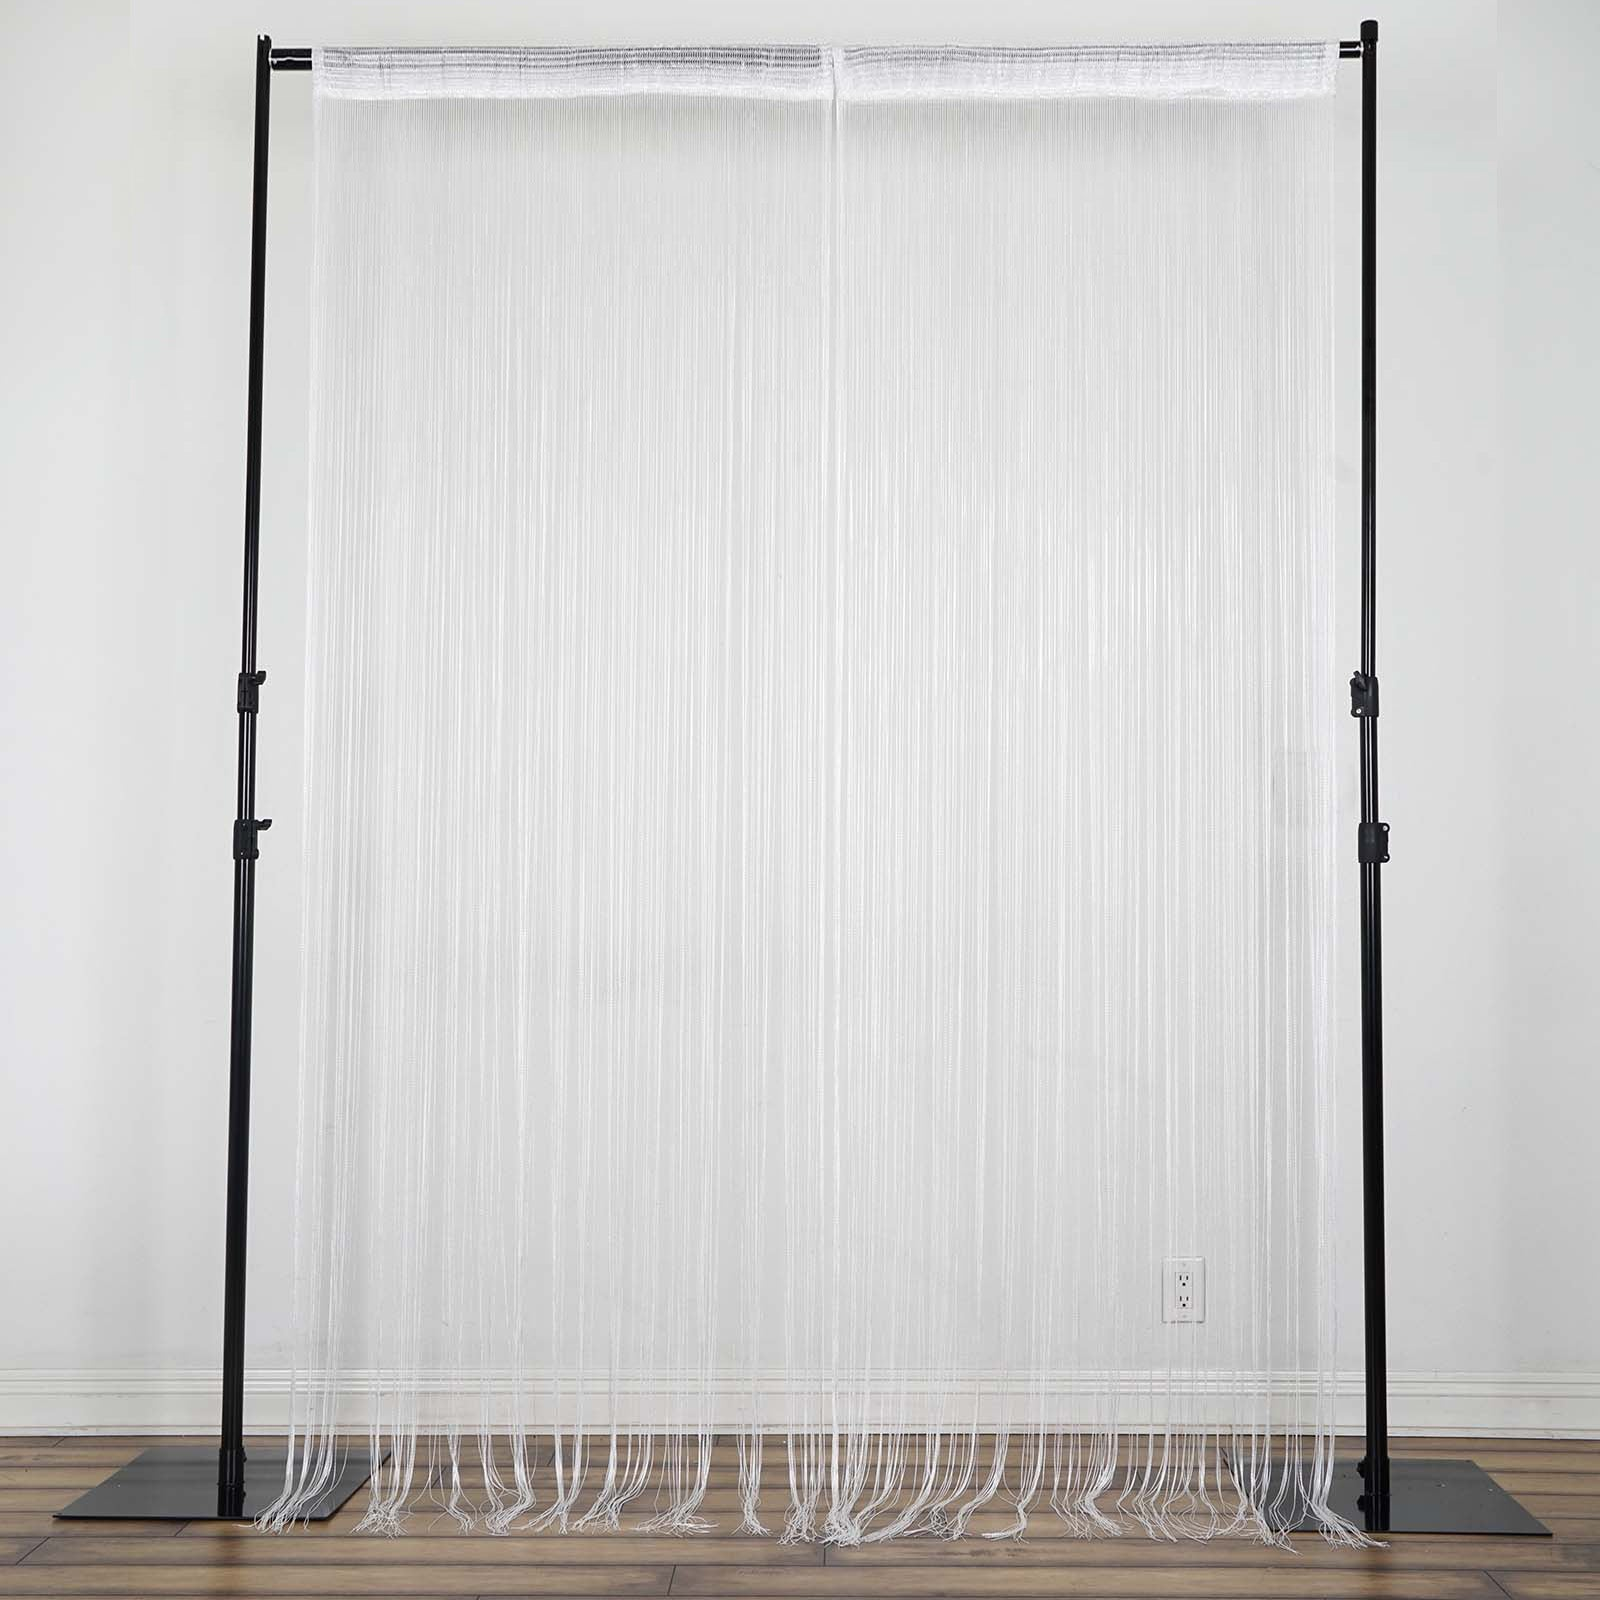 3ft x 12ft White Silk Tassel Door String Curtain  sc 1 st  eFavormart.com & 3ft x 12ft White Silk Tassel Door String Curtain For Wedding Home ...